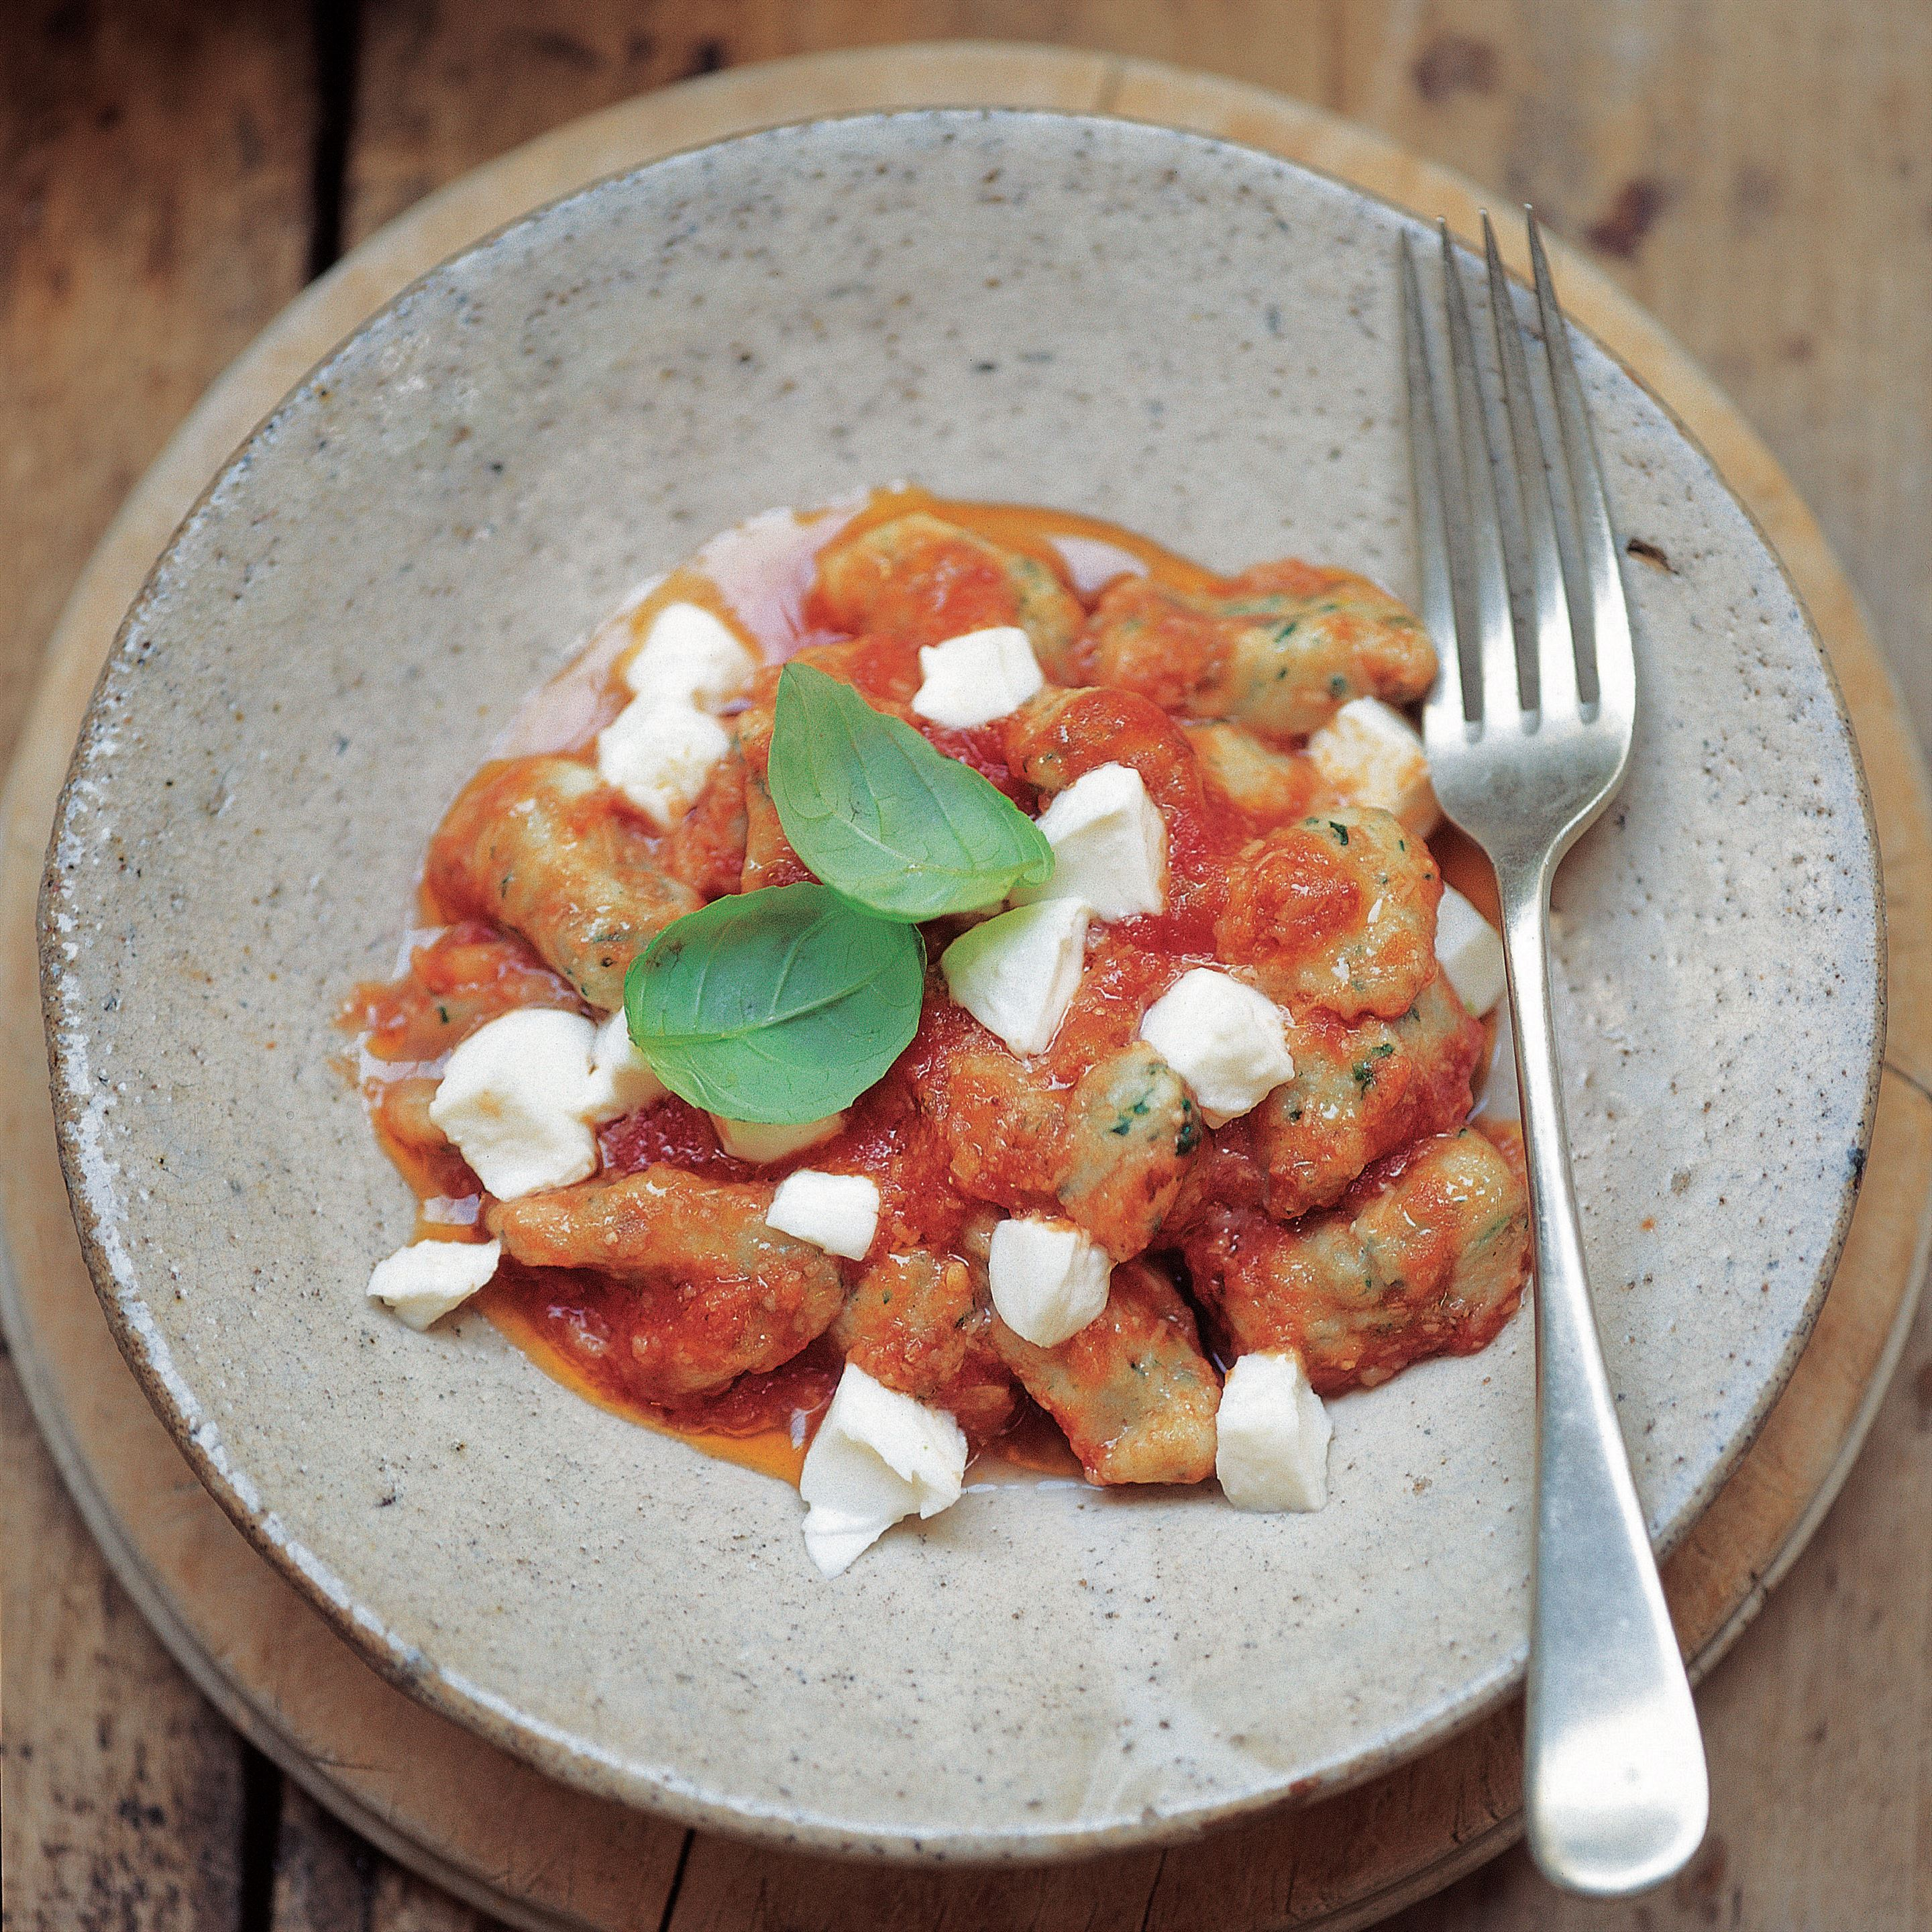 Green gnocchi with tomato and mozzarella